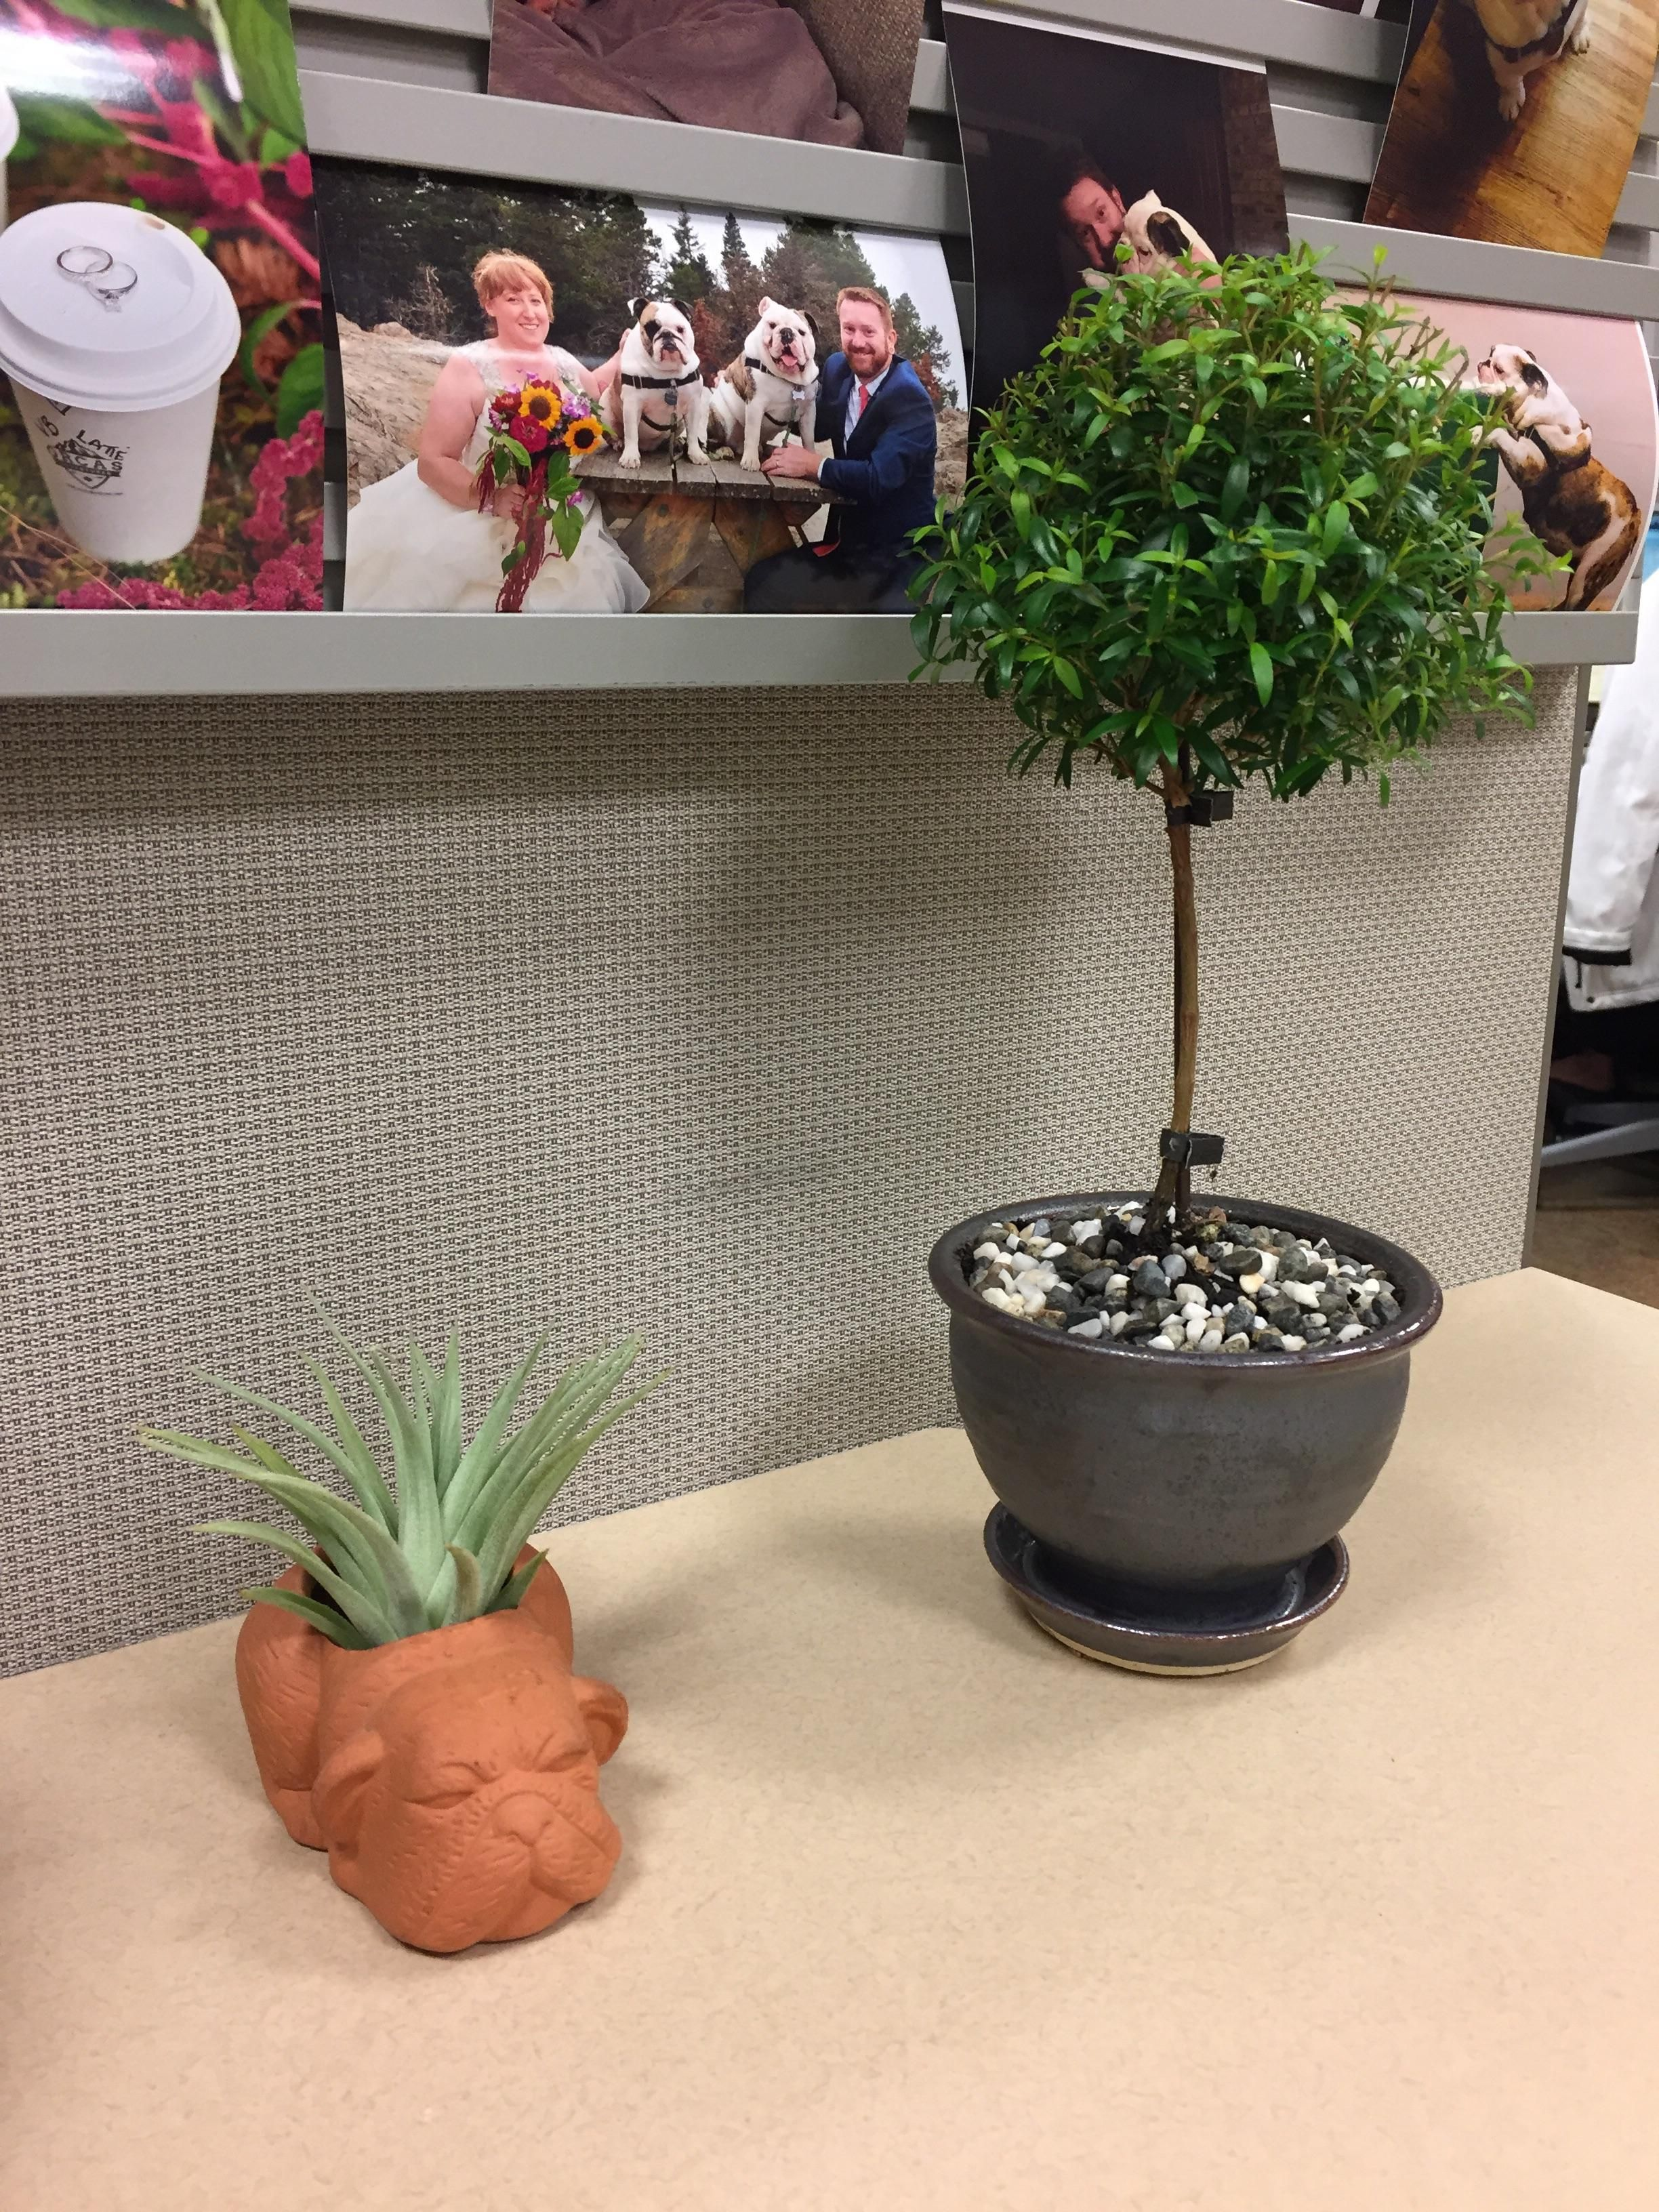 Still too wet and cold to garden here in the PNW so I had to bring some green to my desk at work. Please send sun. #gardening #garden #DIY #home #flowers #roses #nature #landscaping #horticulture